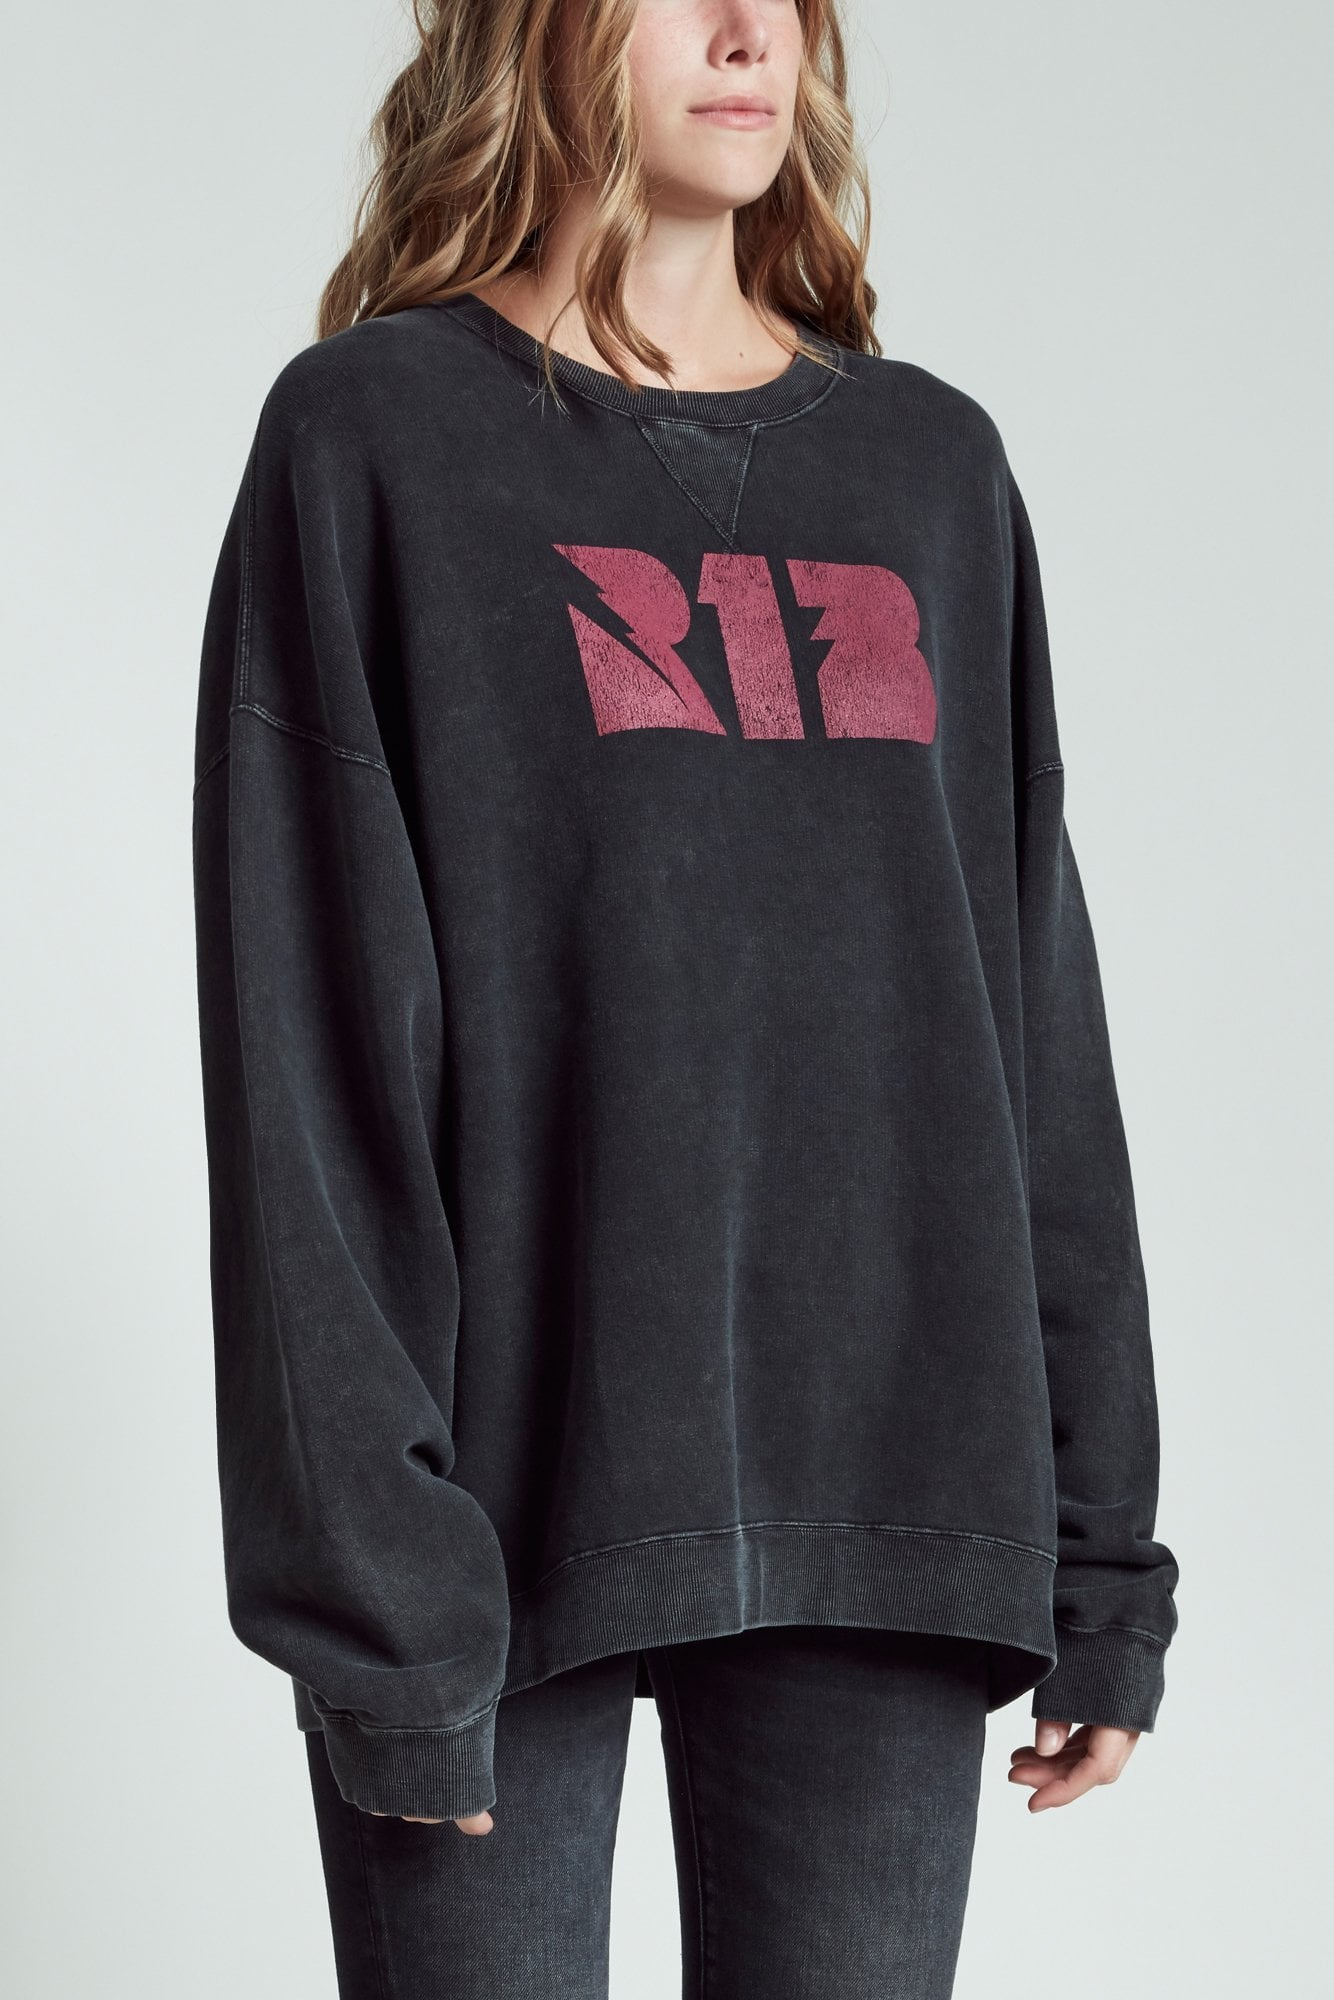 Thunderbolt R13 Sweatshirt - Acid Black